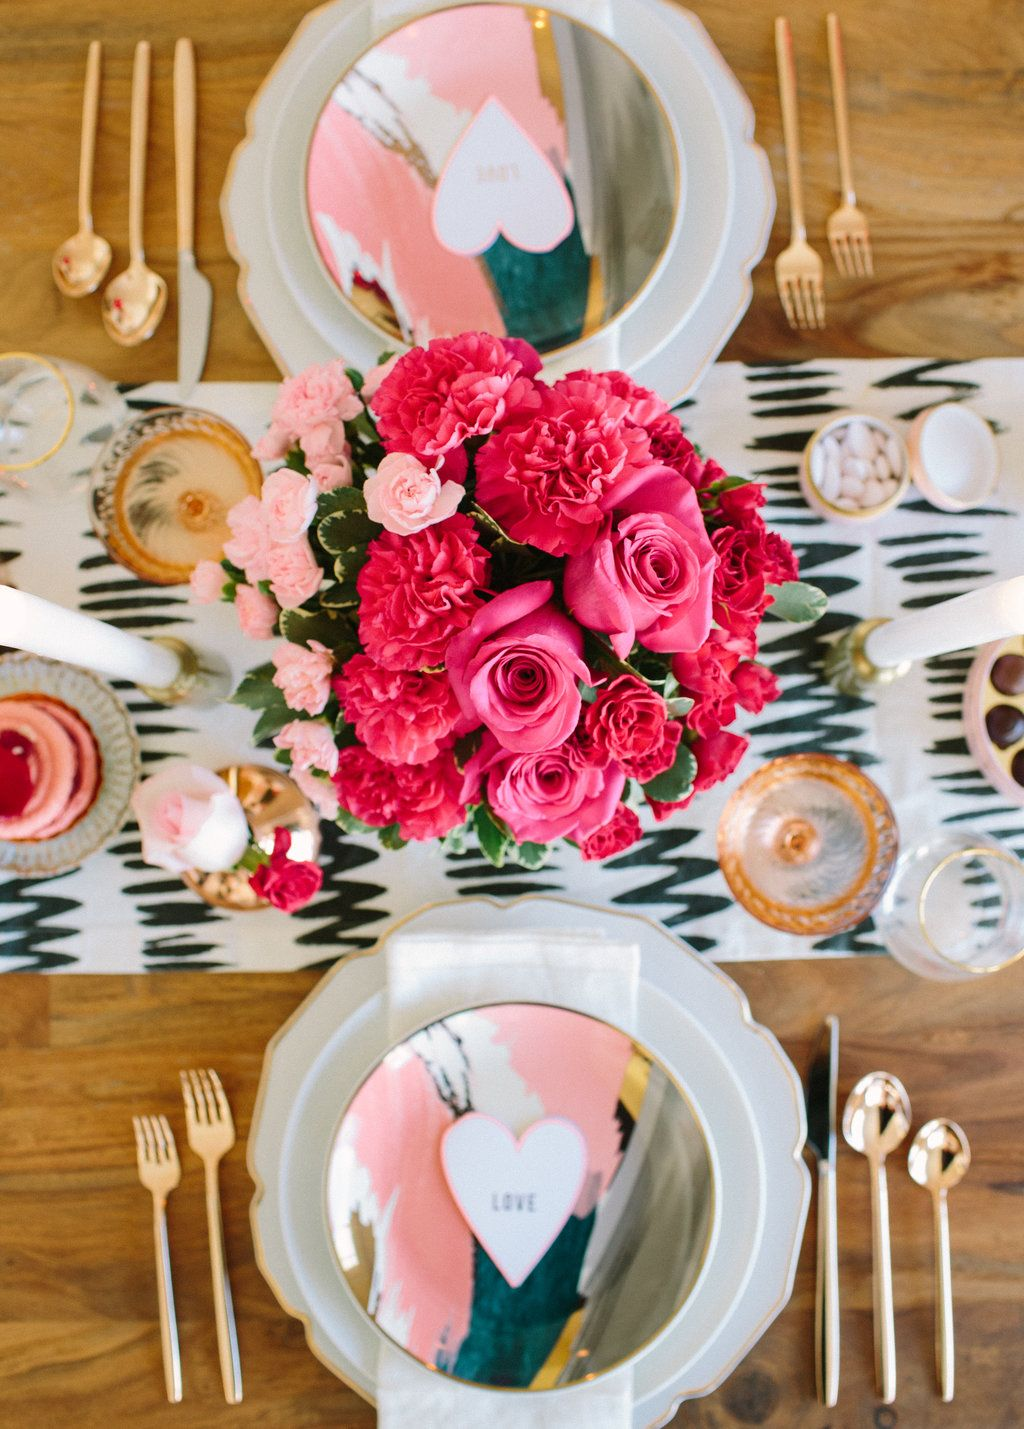 Valentine's Day Dinner Date Styled by 100LayerCake